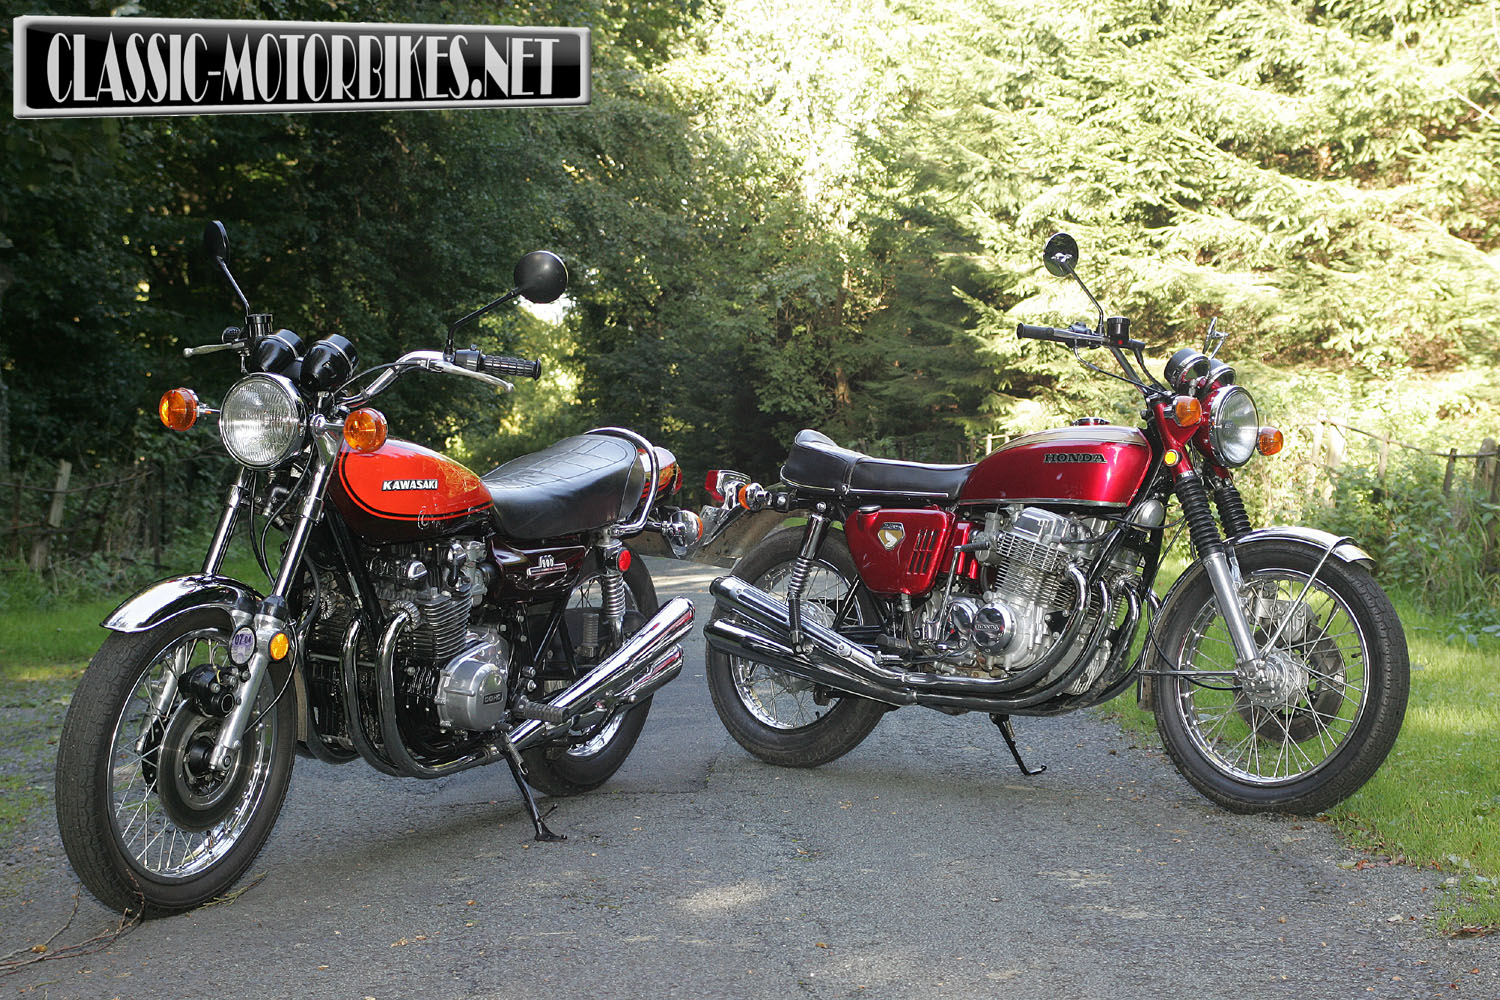 Diagrams in addition 1972 Honda Cb750 Wiring Harness also Cb750k Manuals moreover Triumph Bonneville T120 furthermore Viewtopic. on 1971 honda 750 wiring diagram